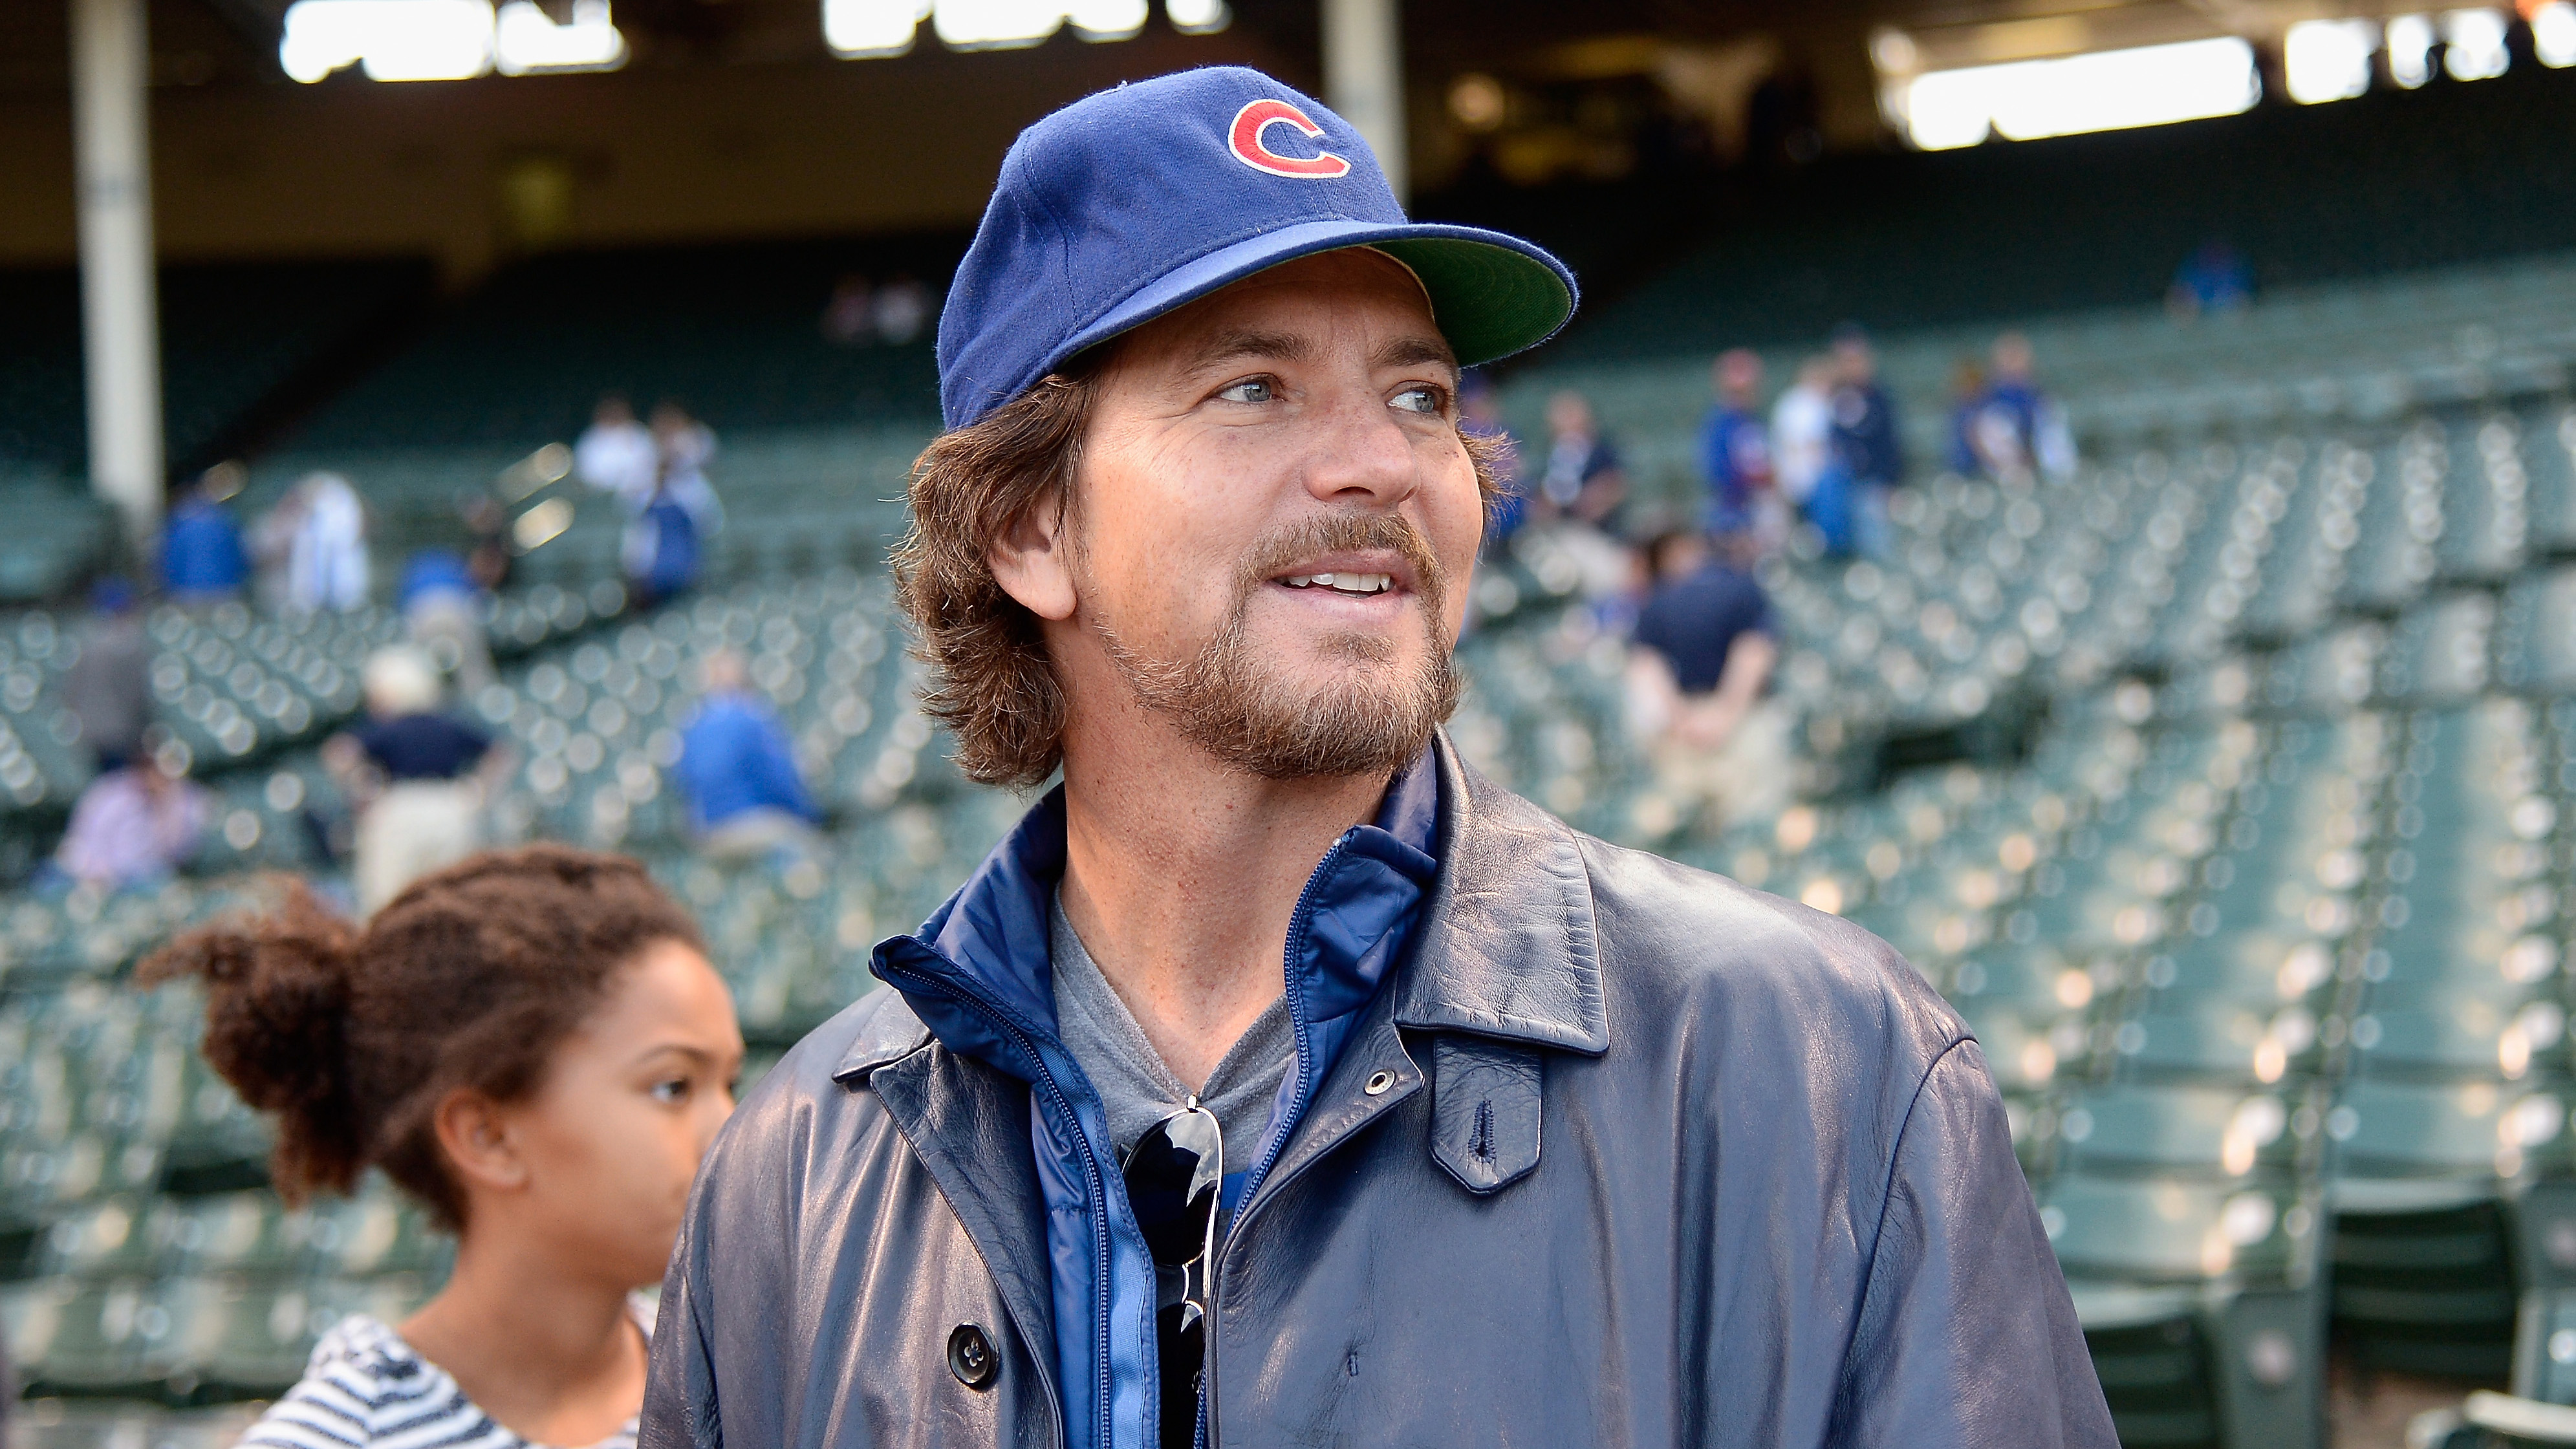 Watch: Pearl Jam front man Eddie Vedder sings 'Take Me Out to the Ballgame' at Wrigley